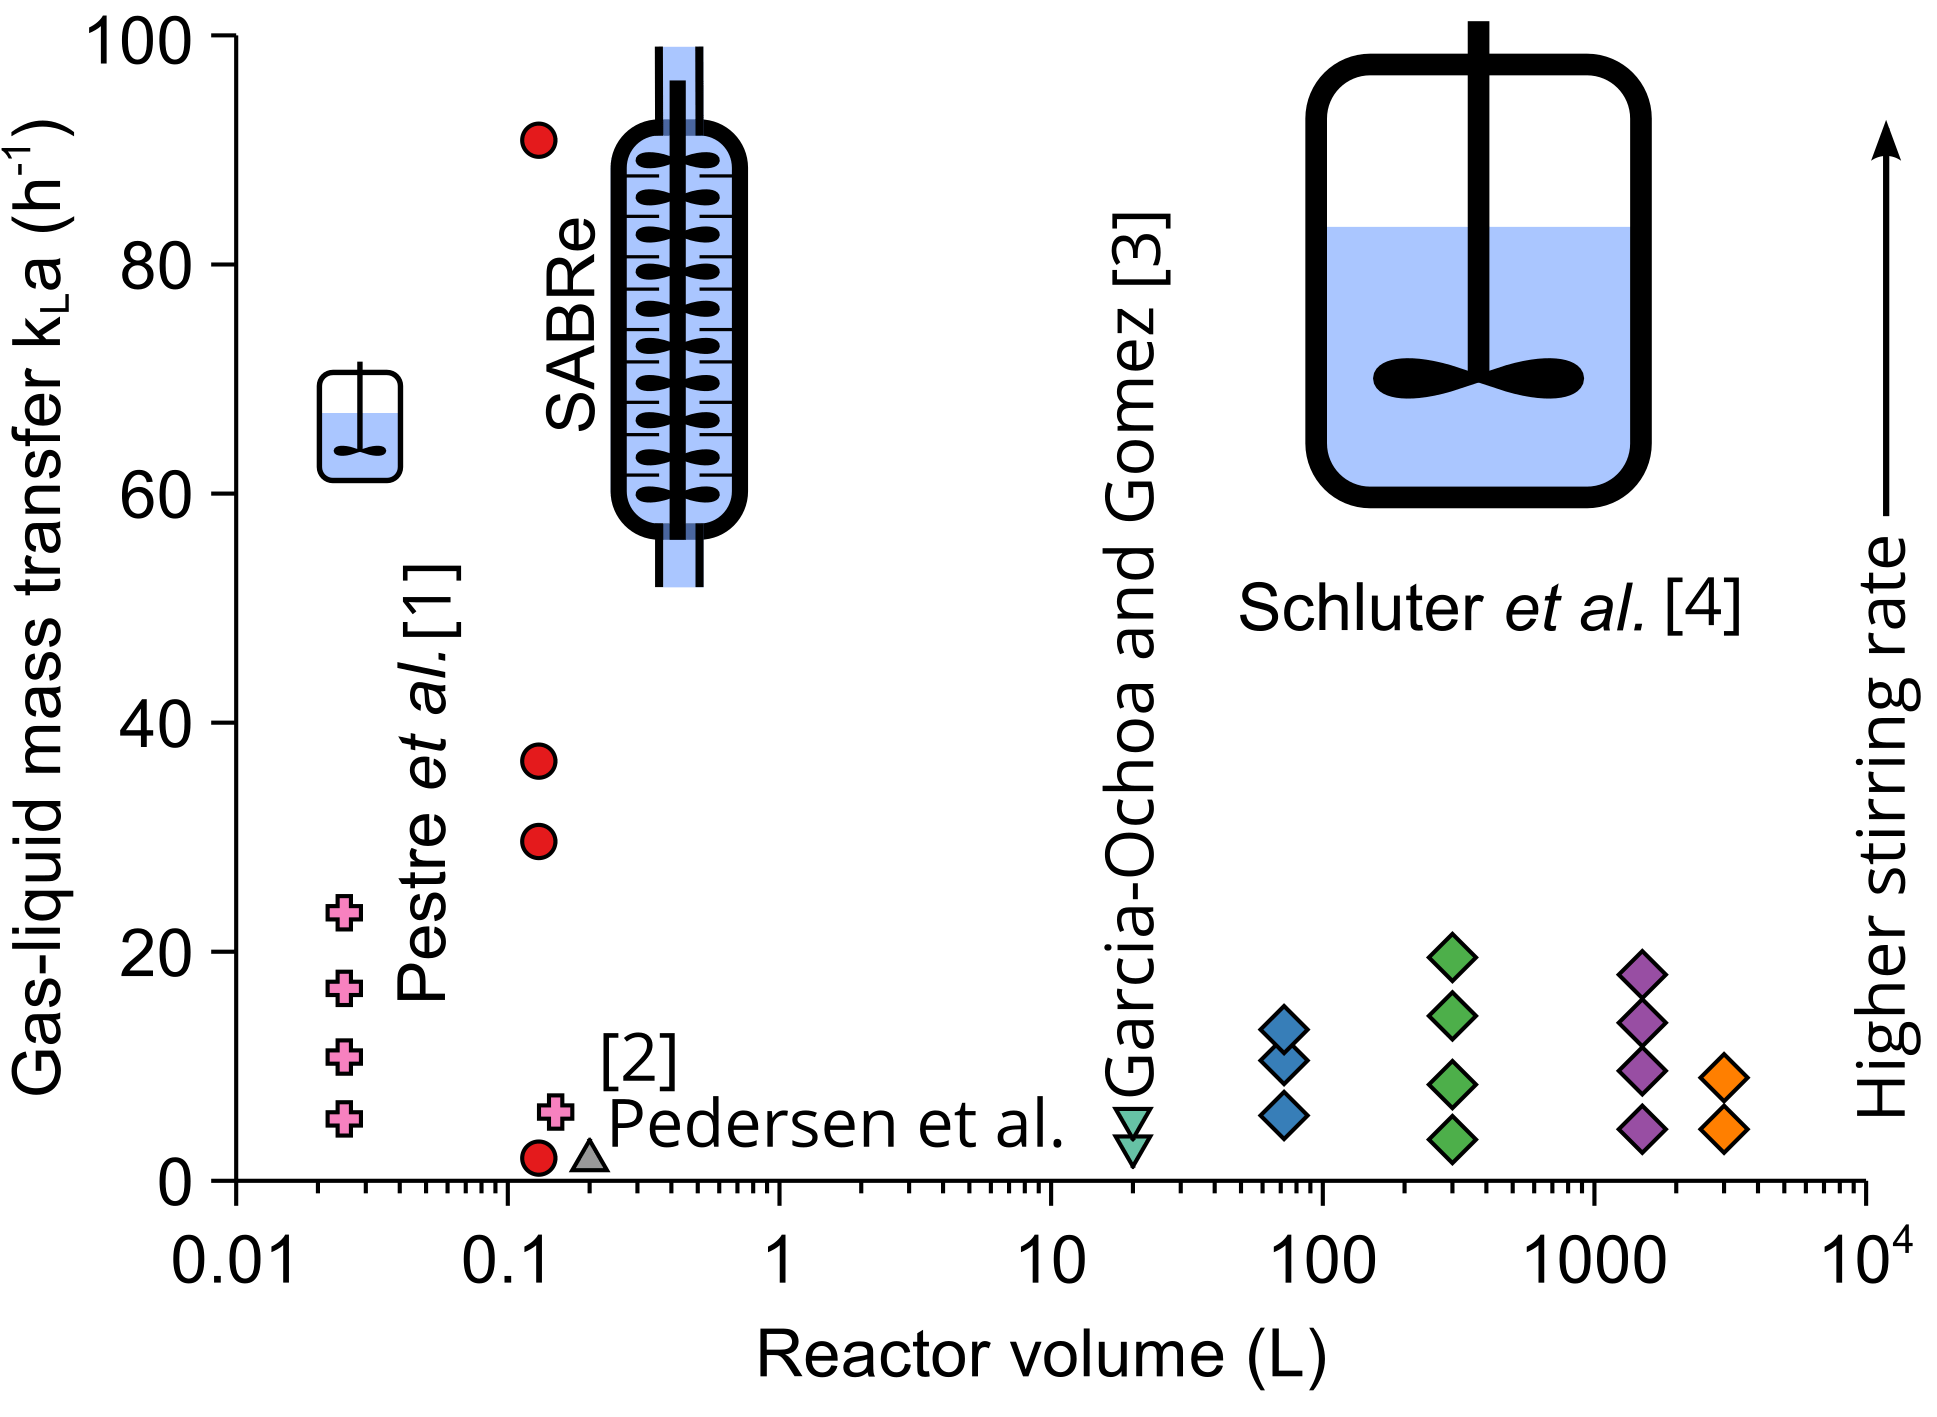 Comparison of kLa performance for the SABRe and batch reactors at various scales